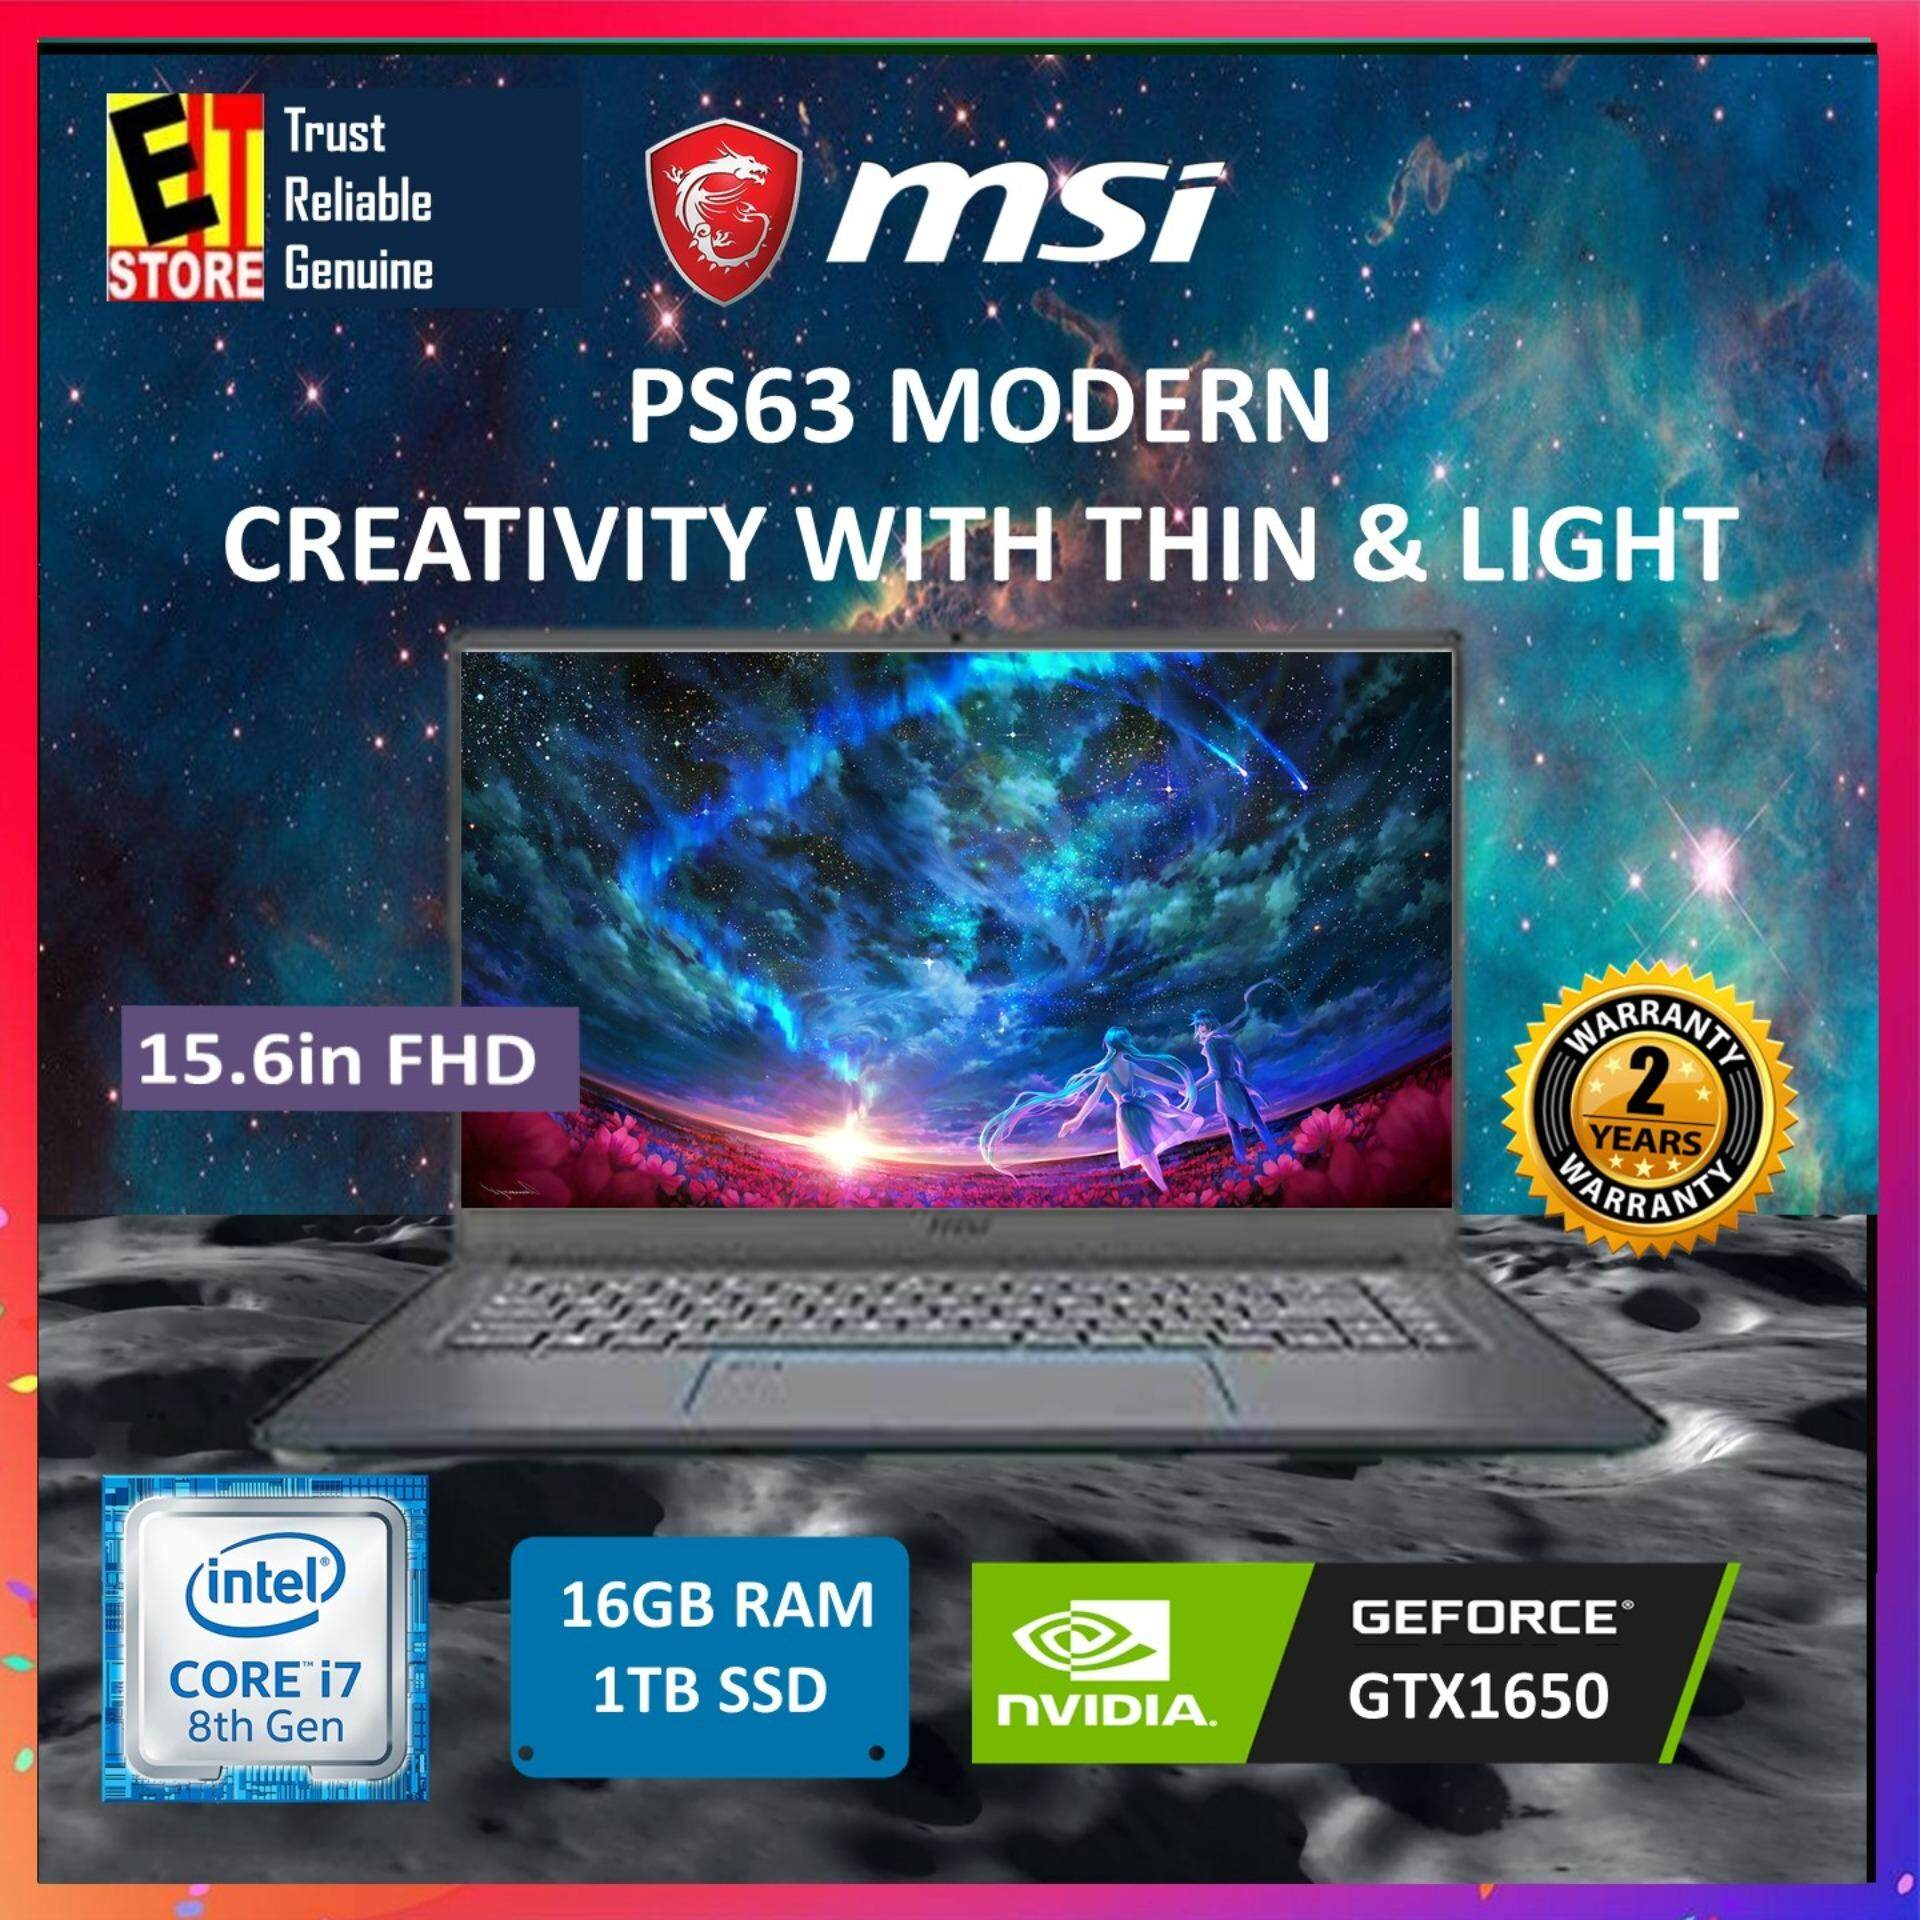 MSI PS63 MODERN 8SC-043MY BLACK (I7-8565U/8G*2/1TB SSD/GTX1650 4G/15.6/W10/2YRS) + BACKPACK Malaysia